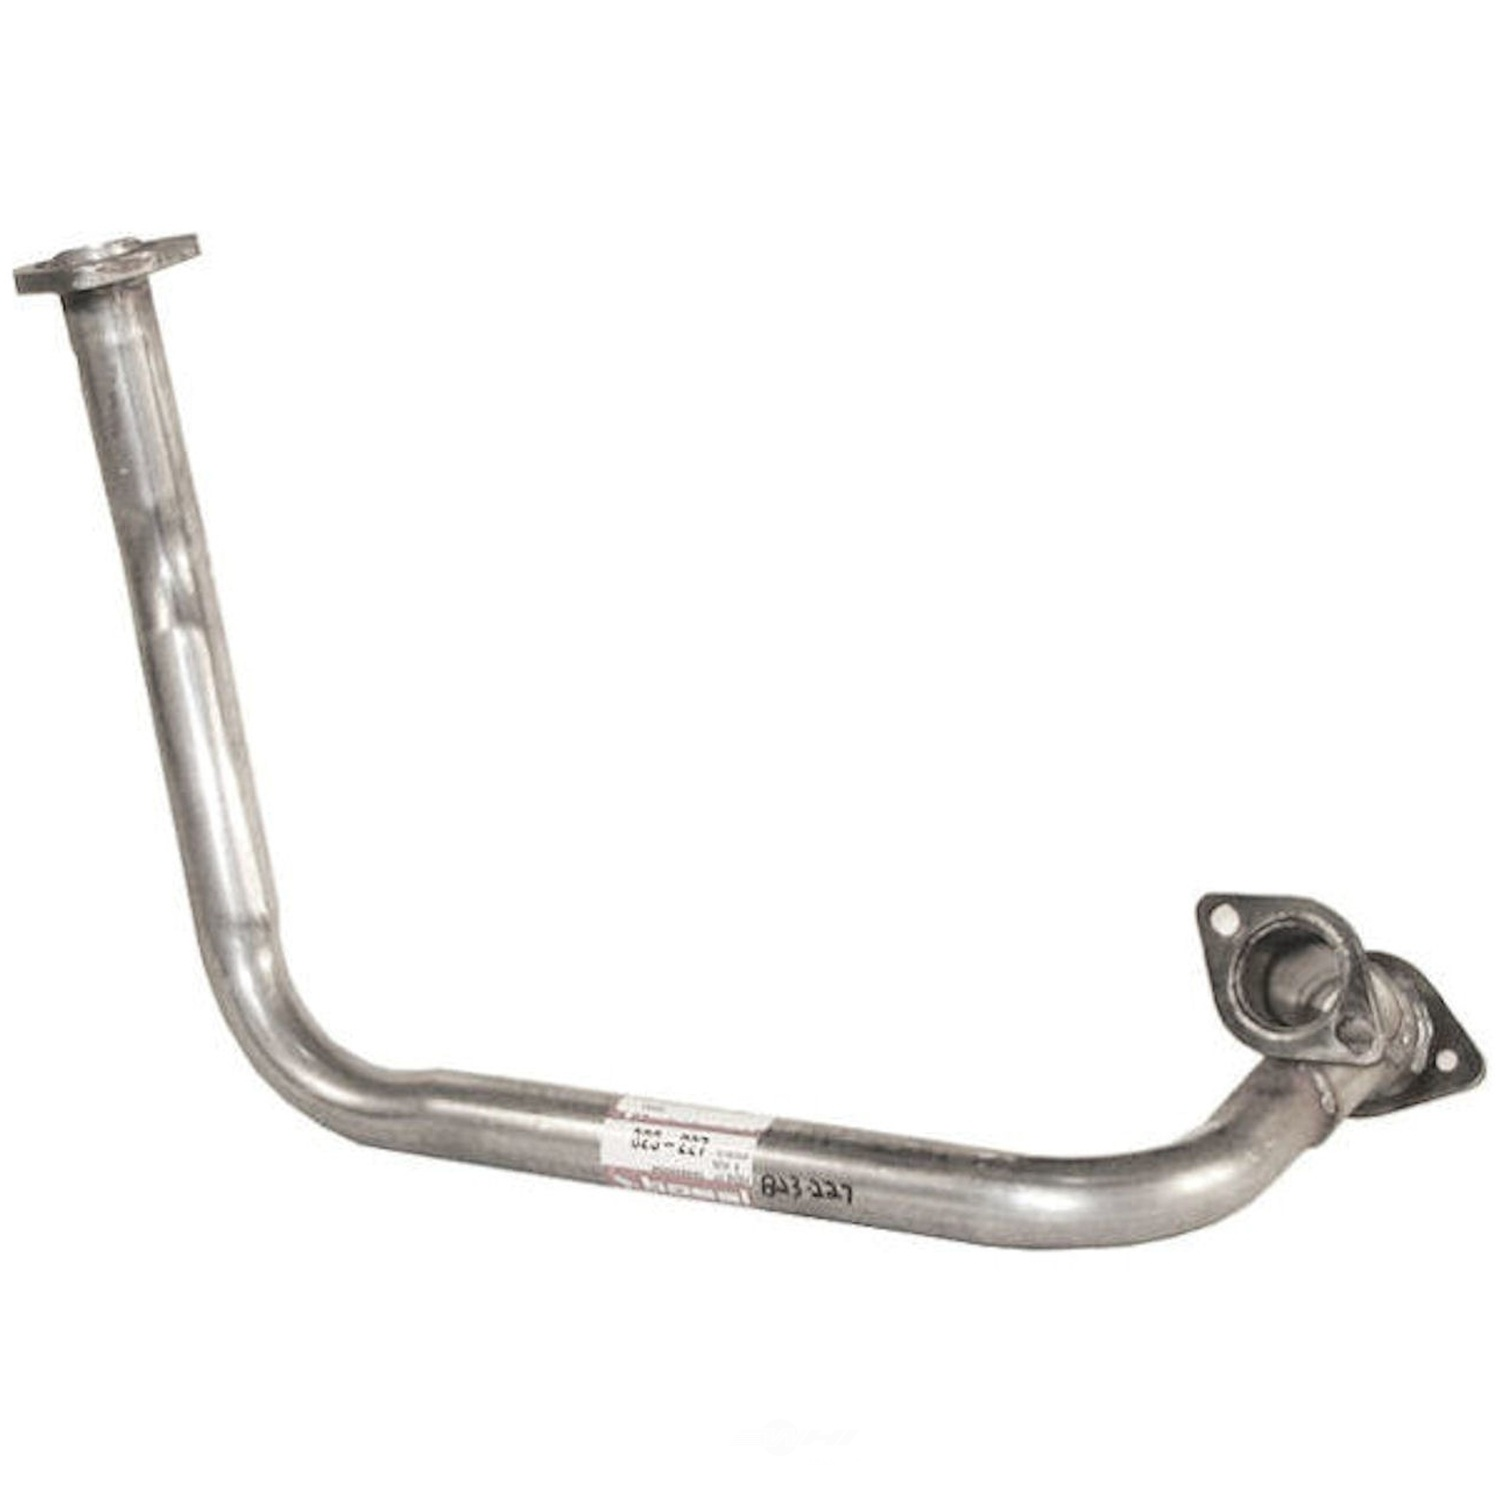 Exhaust Pipe Front Bosal 823-227 fits 87-95 Nissan